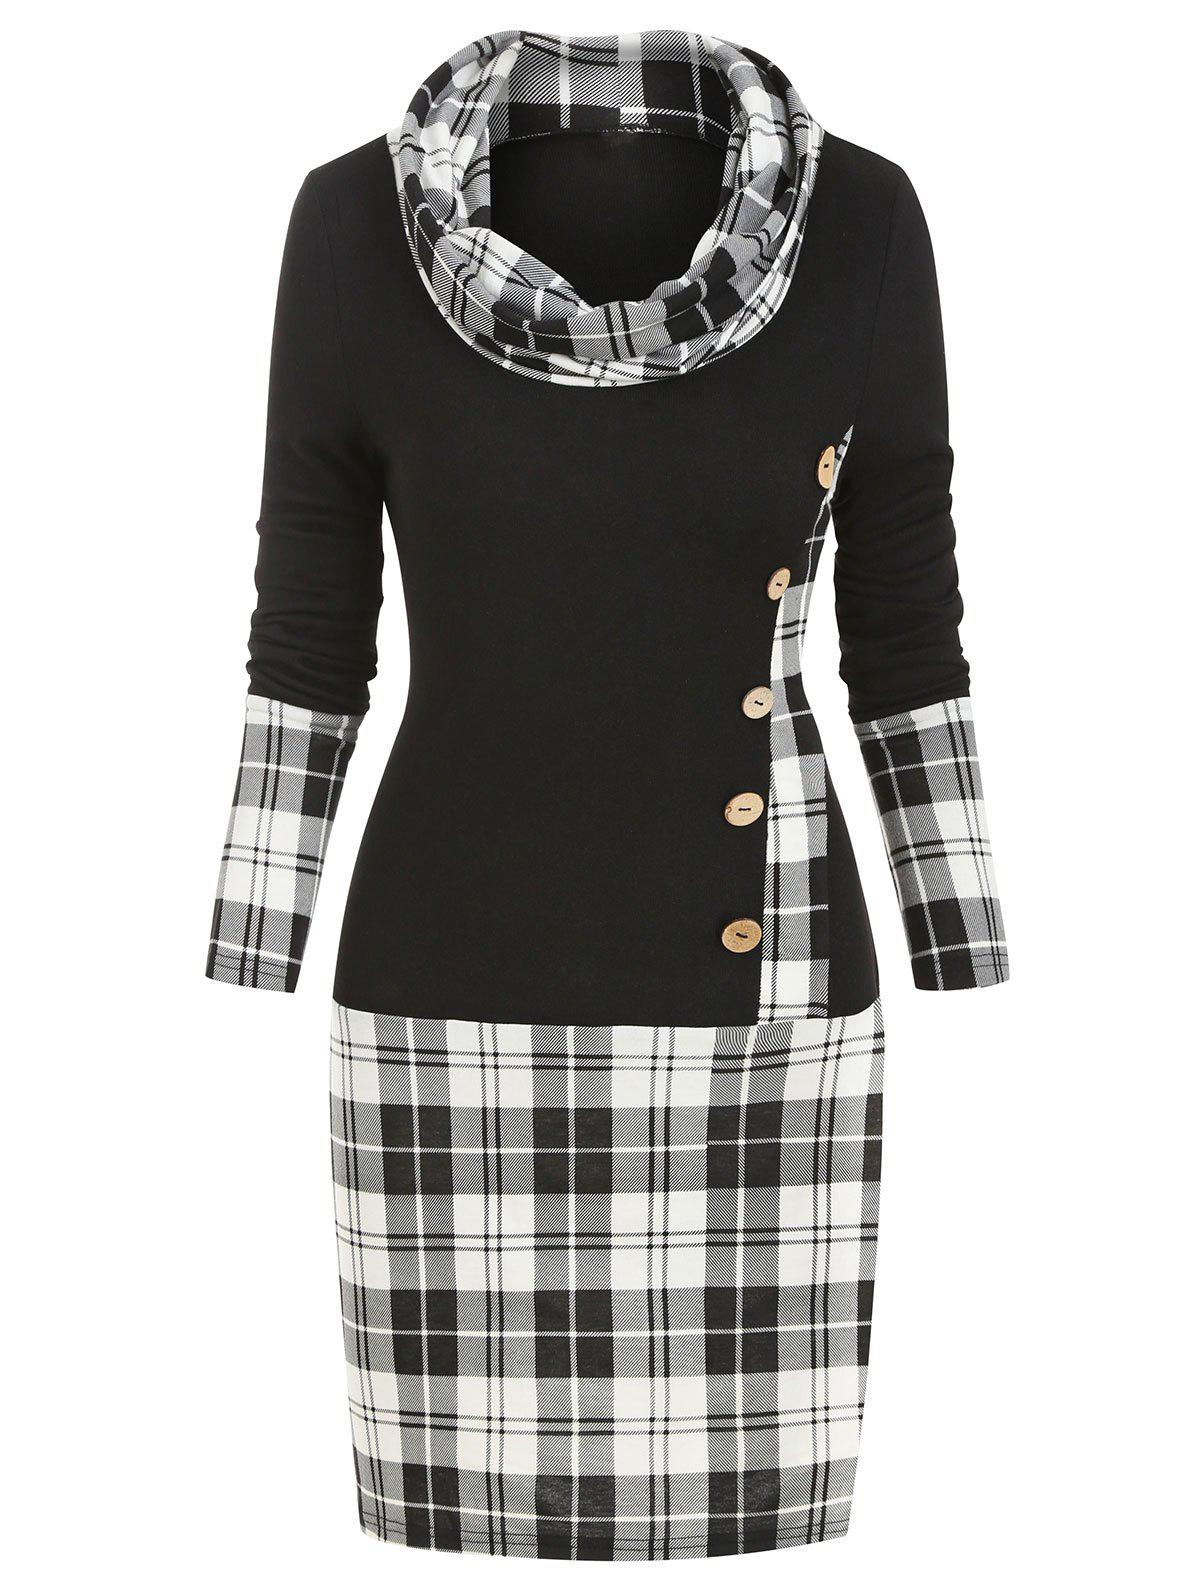 Discount Cowl Neck Plaid Print Mock Button Long Sleeve Sheath Dress